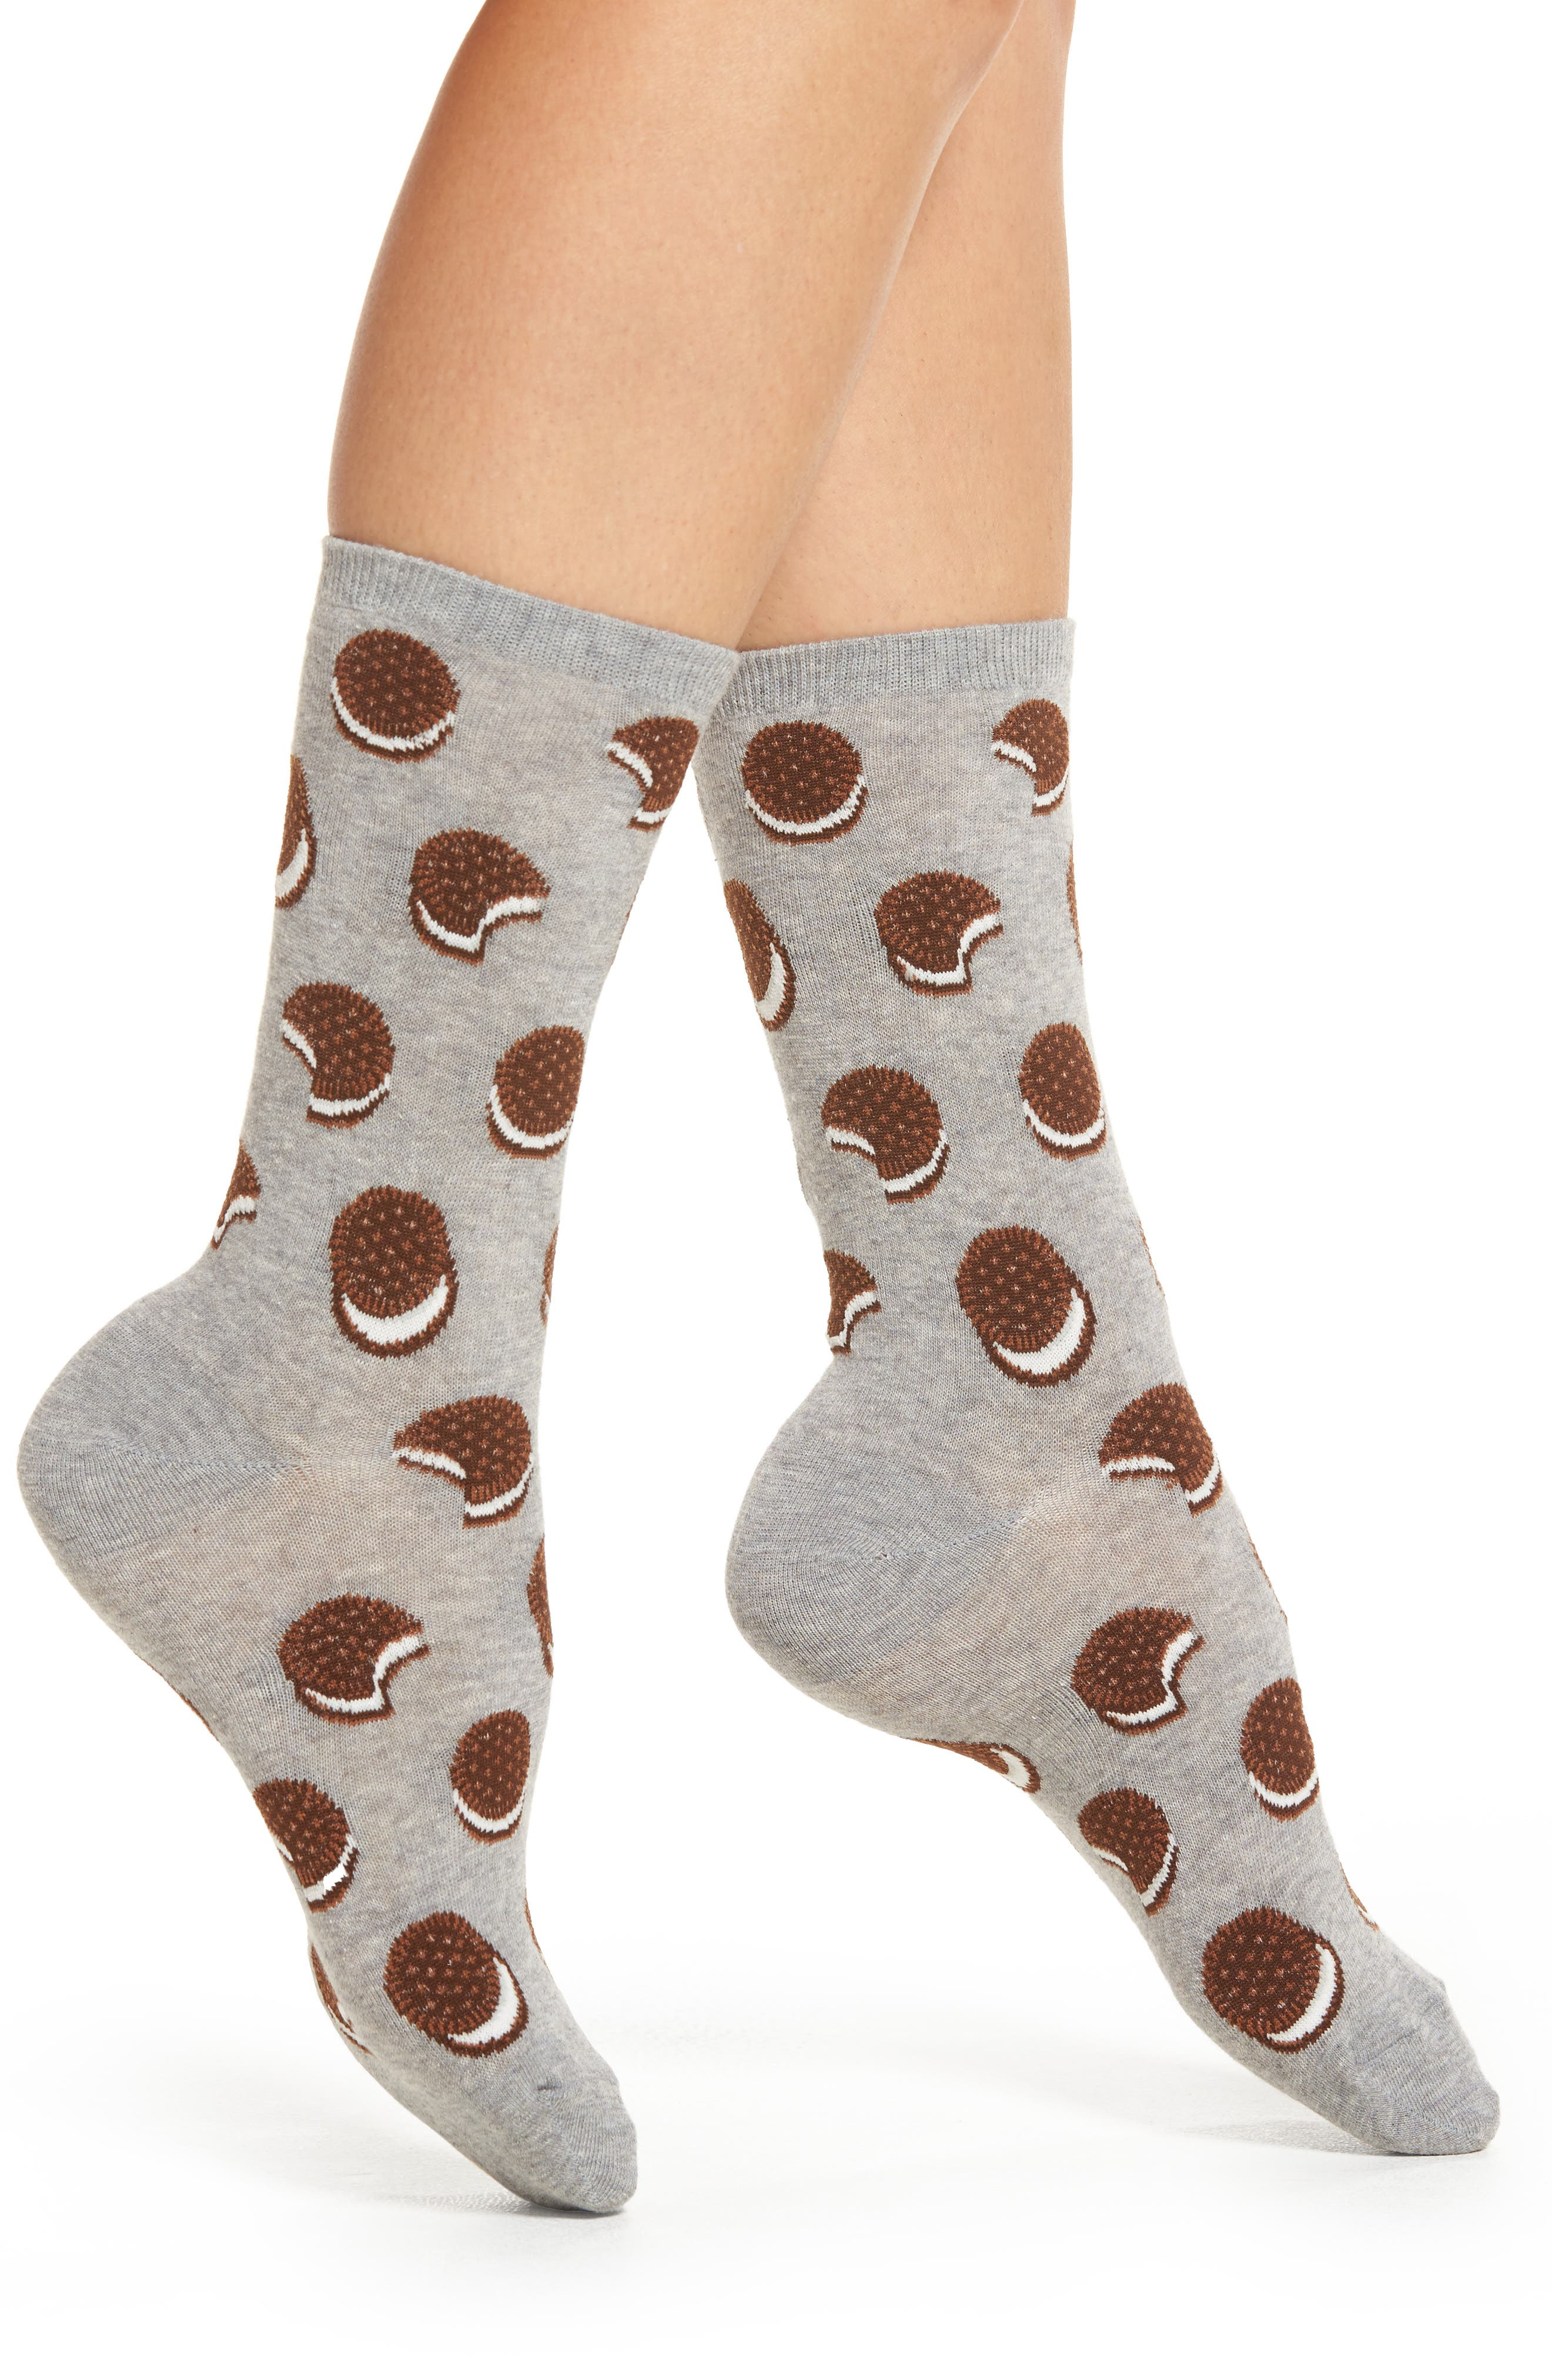 Hot Sox Sandwich Cookie Crew Socks (3 for $15)